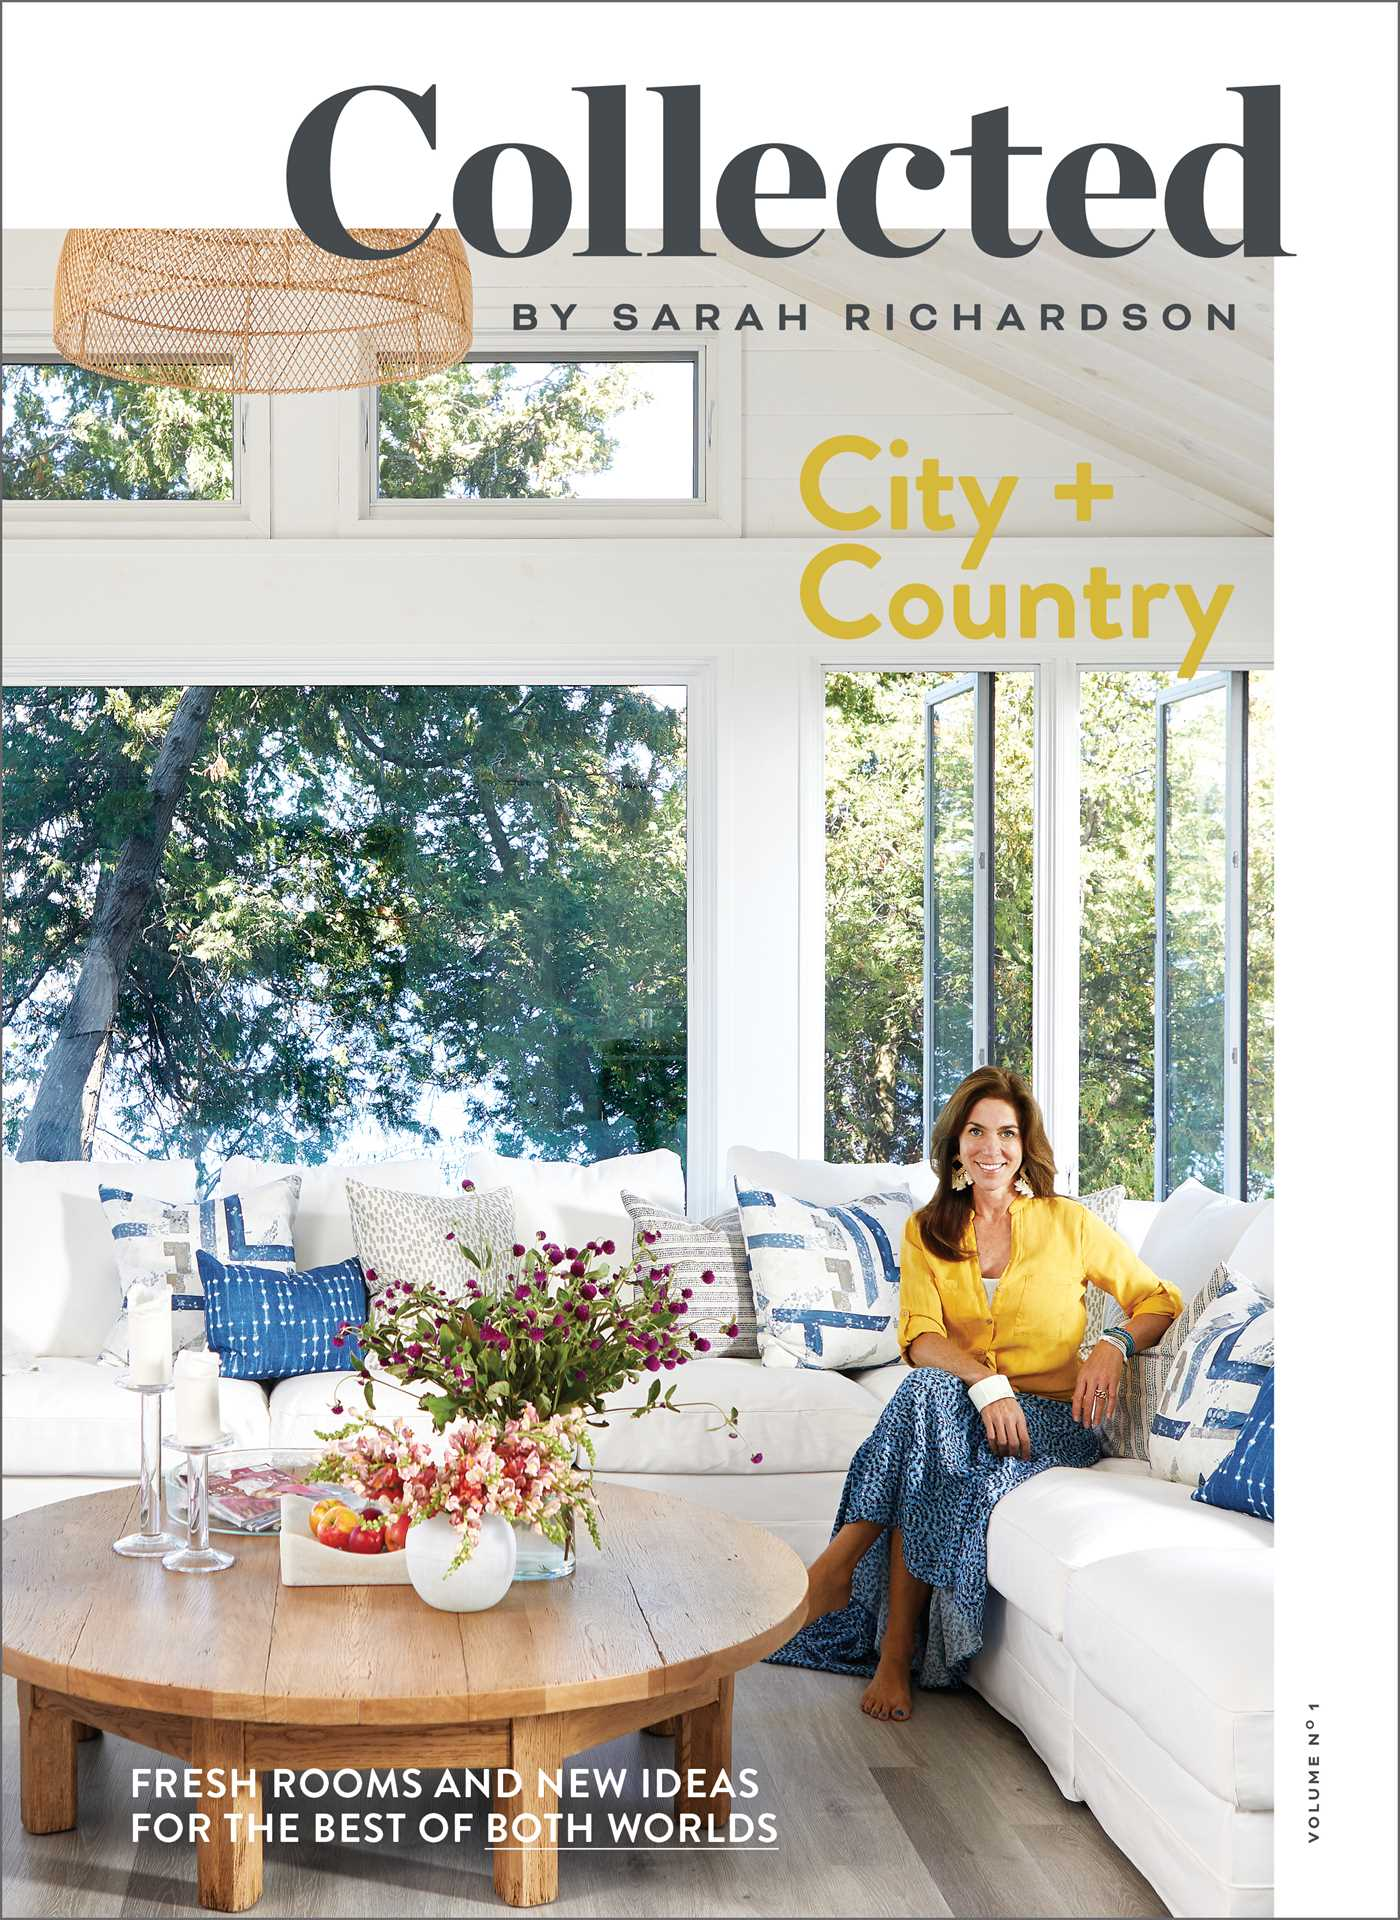 Sarah Richardson Off The Grid collected: city + country, volume no 1 | booksarah